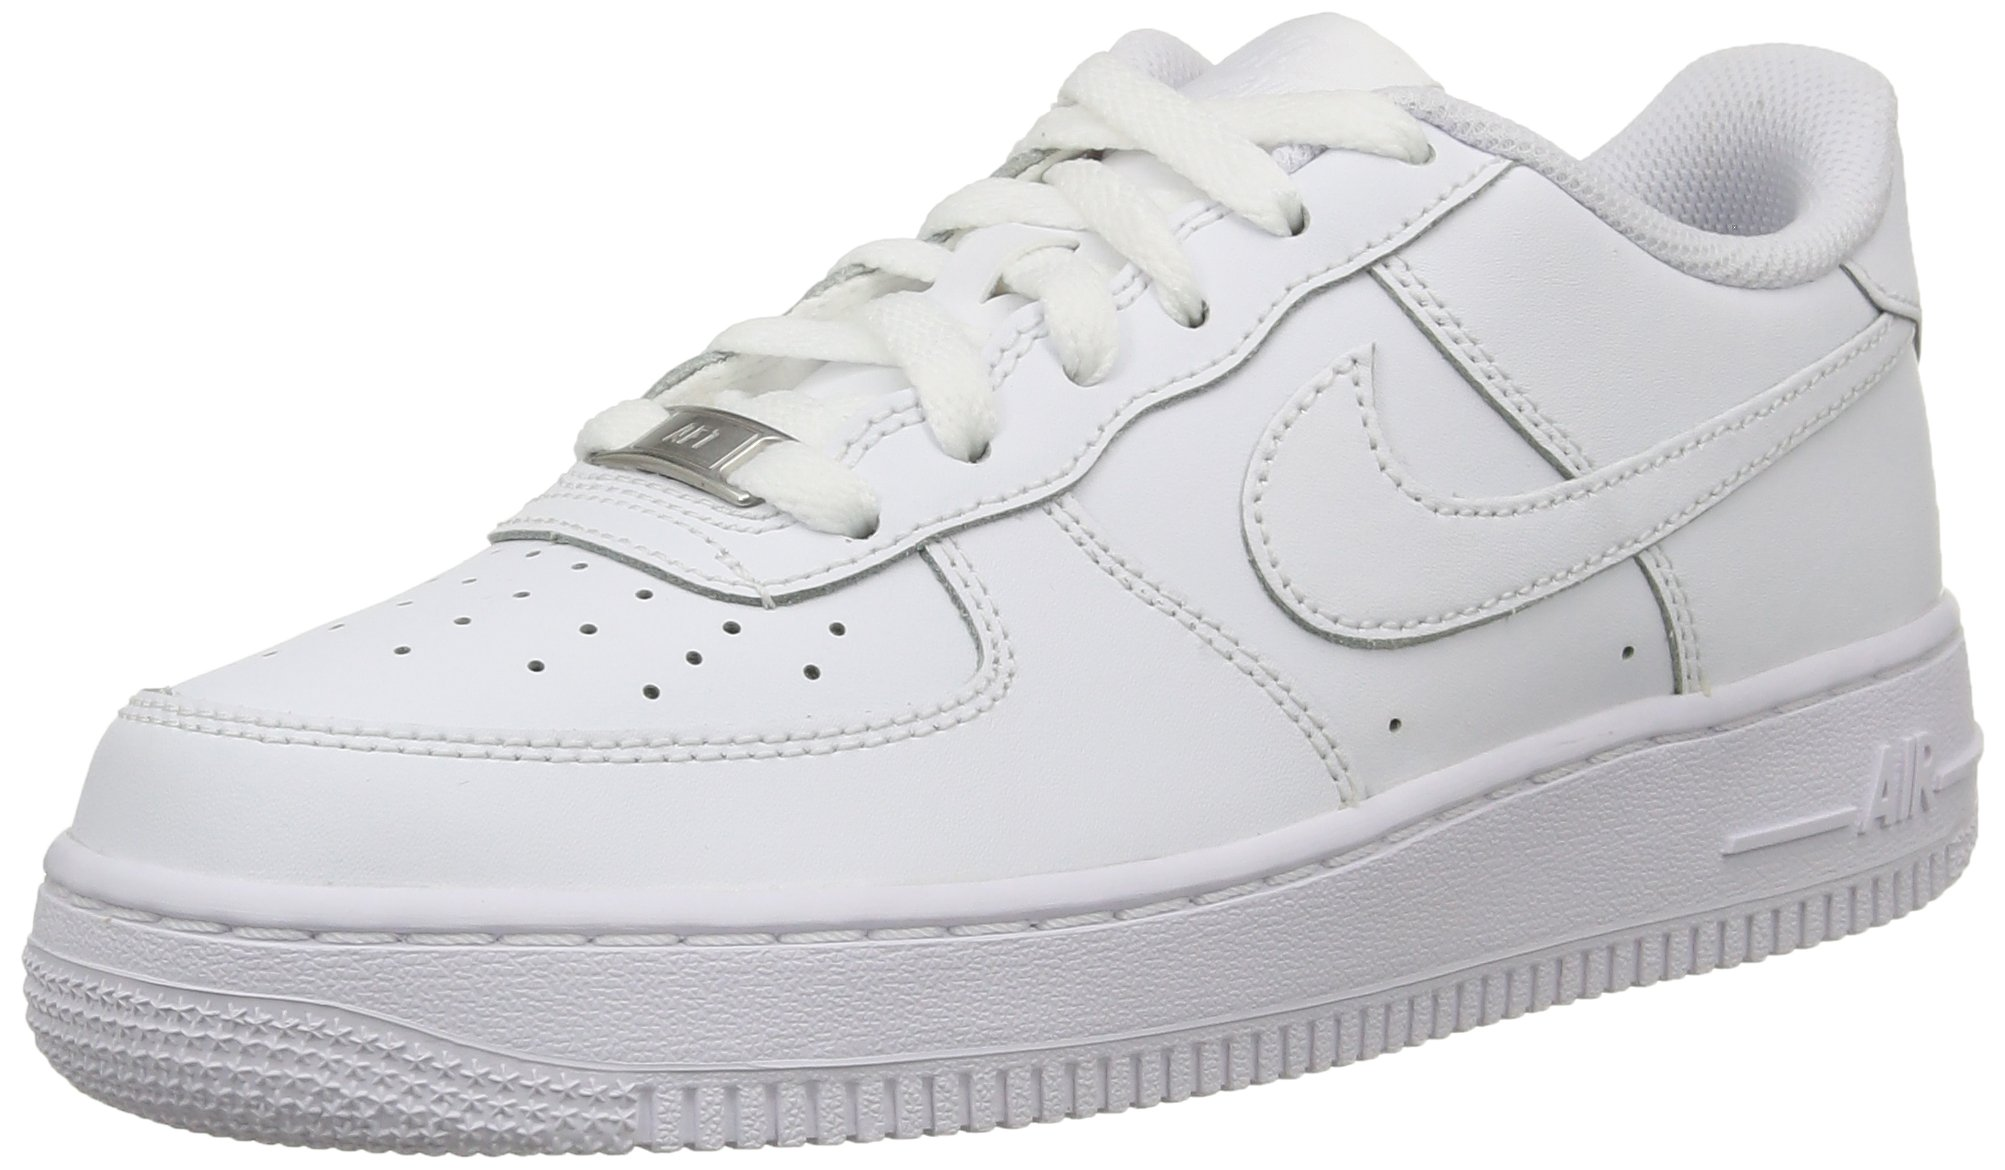 Nike Air Force 1 (GS) Big Kids Sneakers White/White 314192-117 (6 M US)